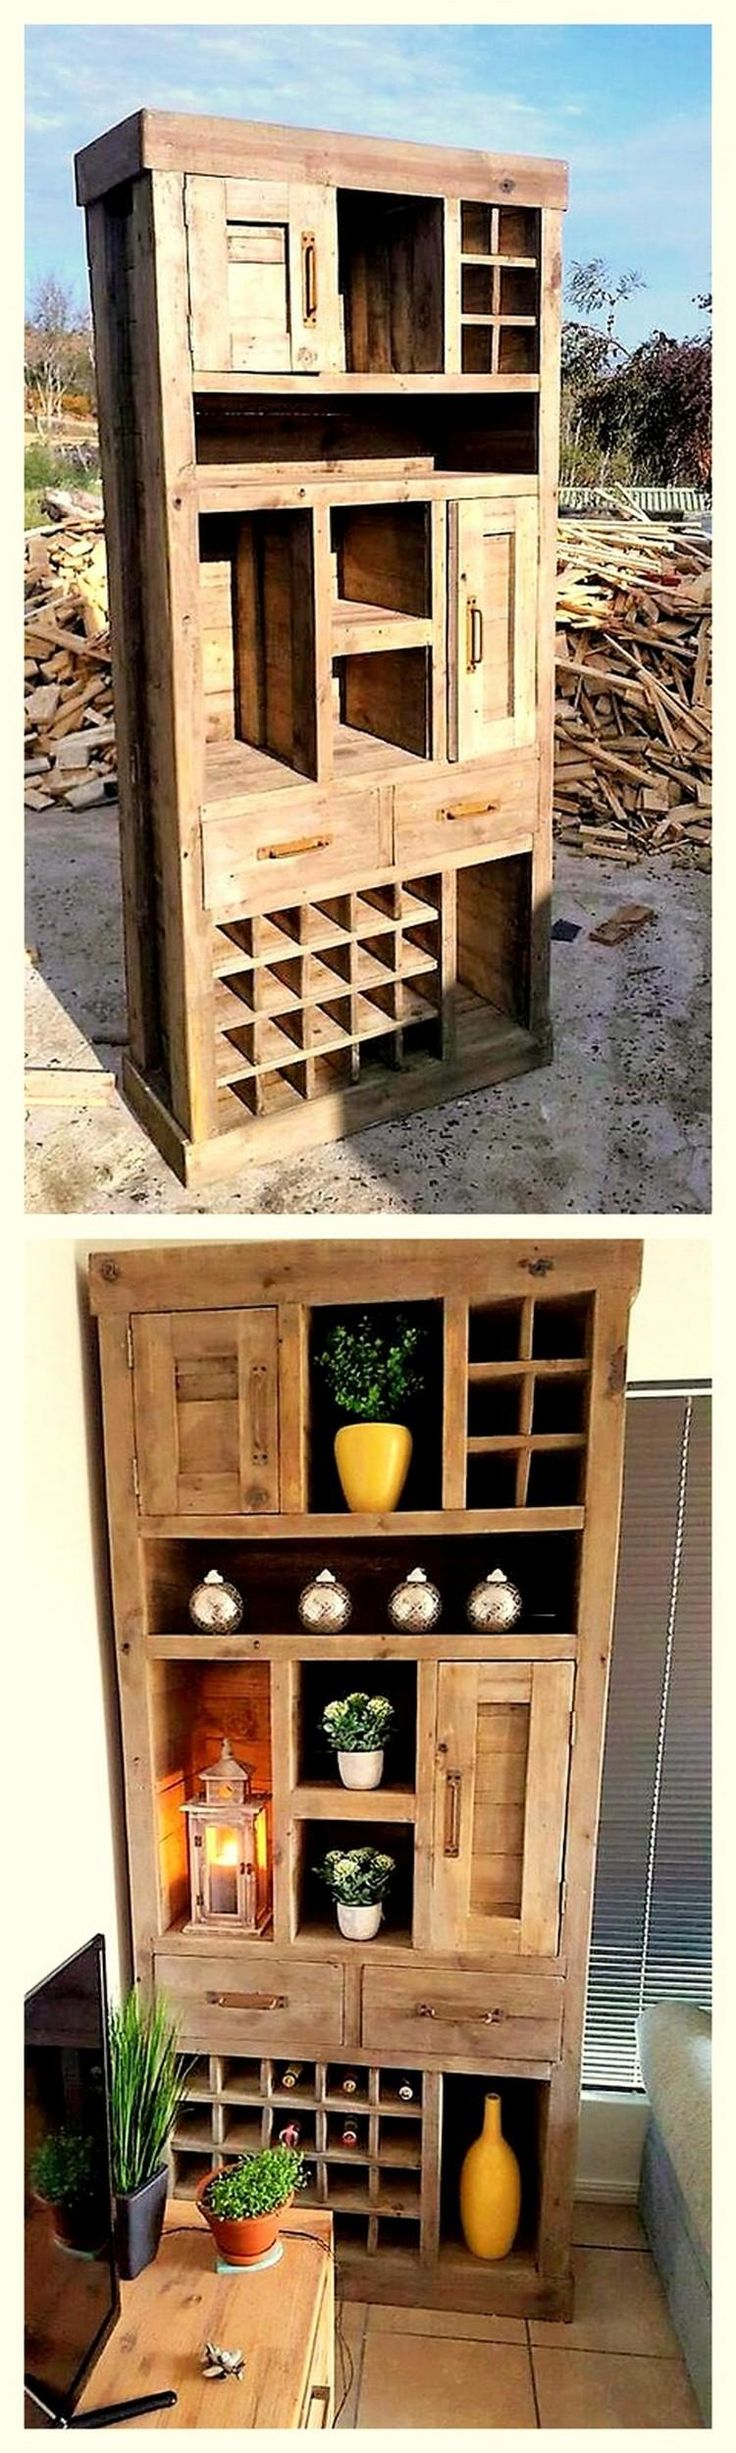 Decent pallet hutch idea